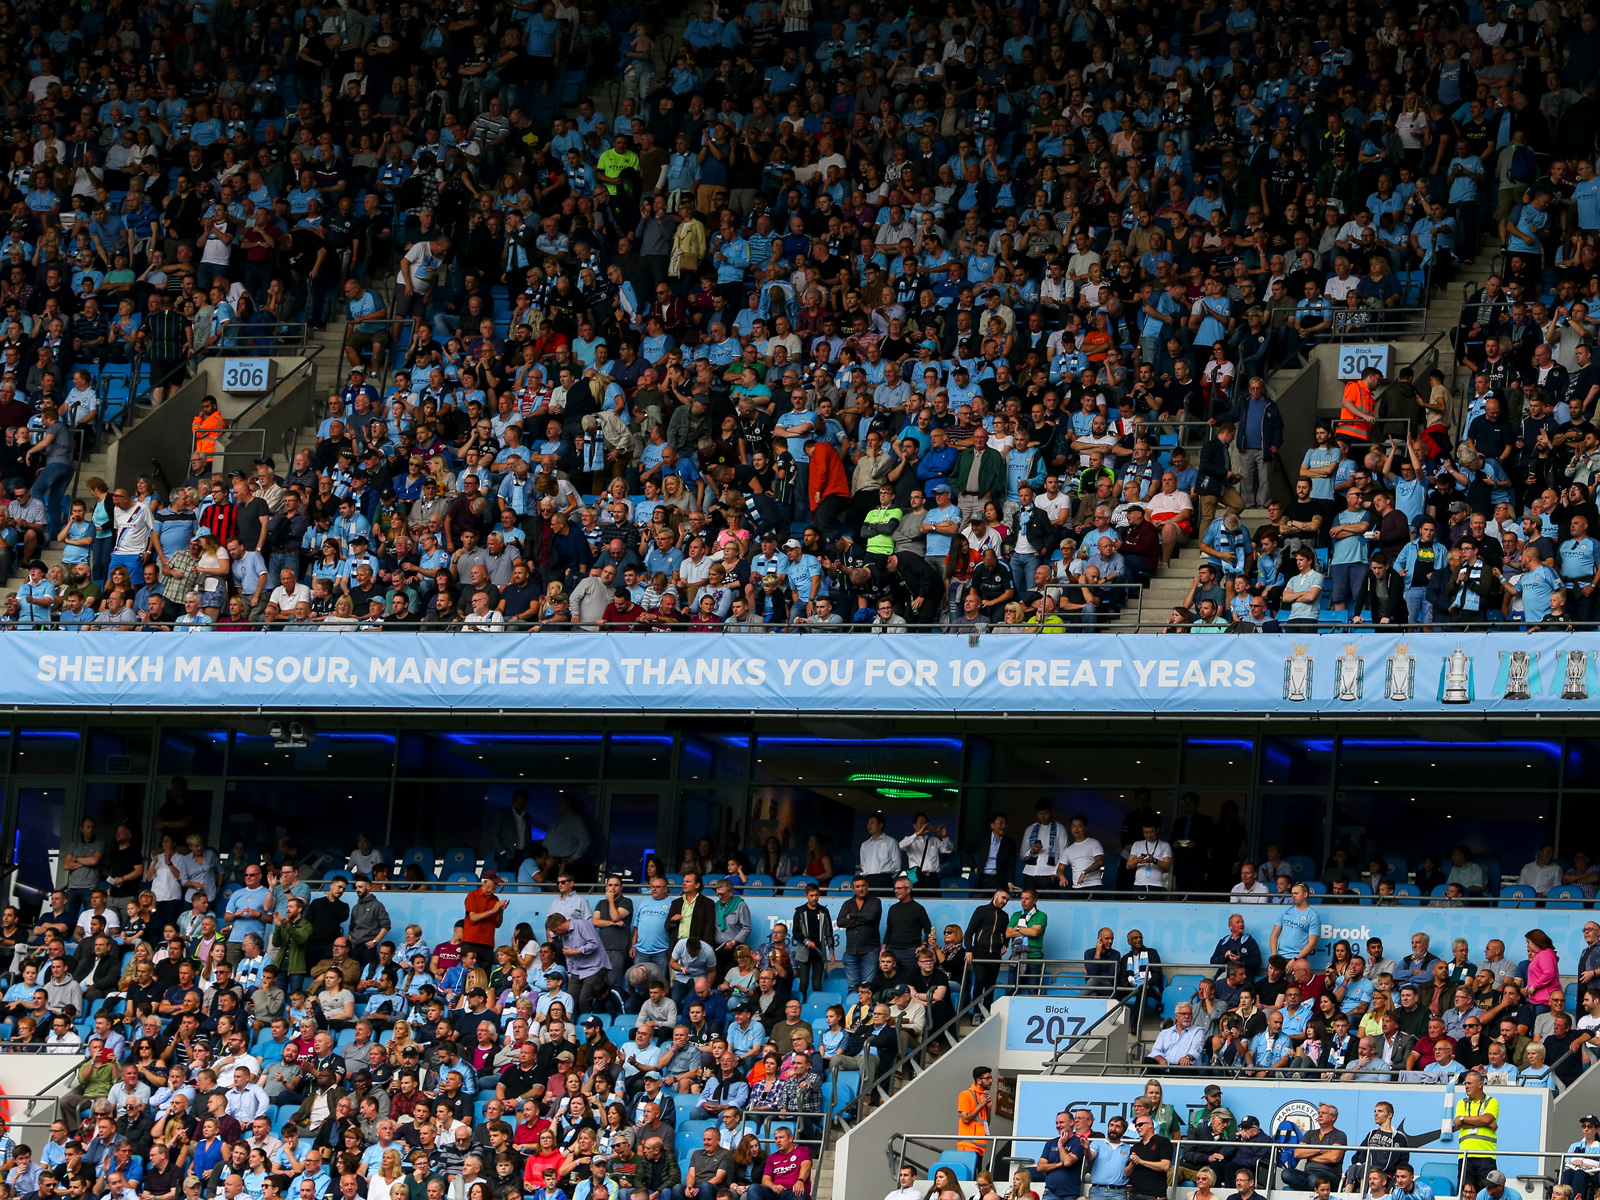 Man City has enjoyed a run of success under Sheikh Mansour's ownership